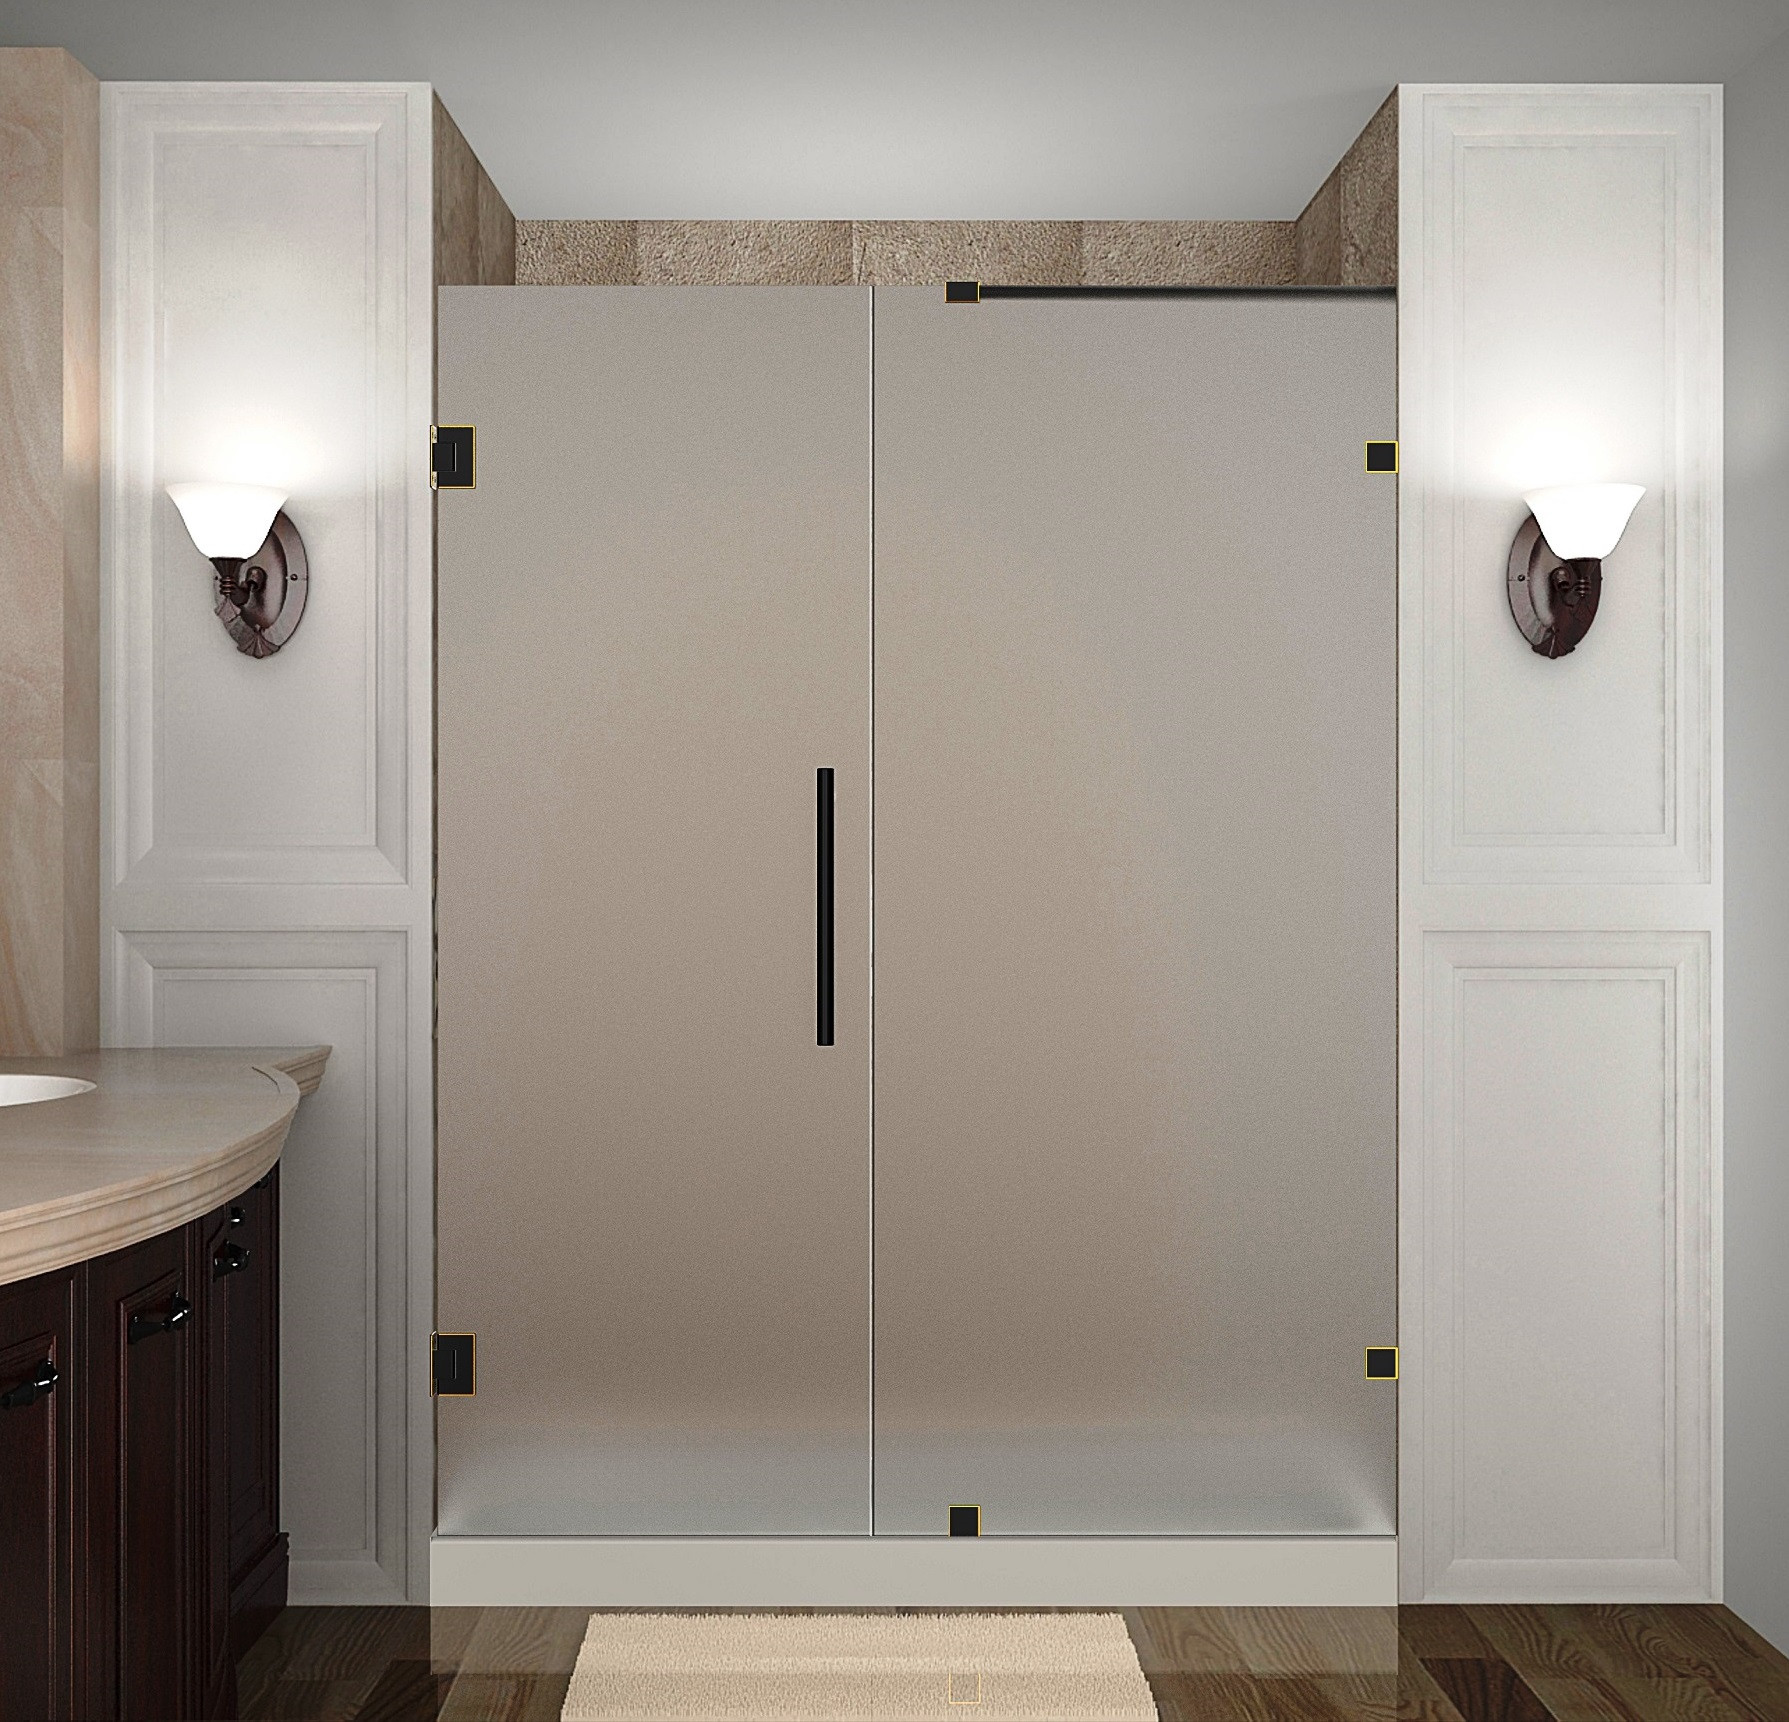 Aston Global SDR985F-ORB-59-10 Frameless Hinged Frosted Glass Shower Door In Oil Rubbed Bronze